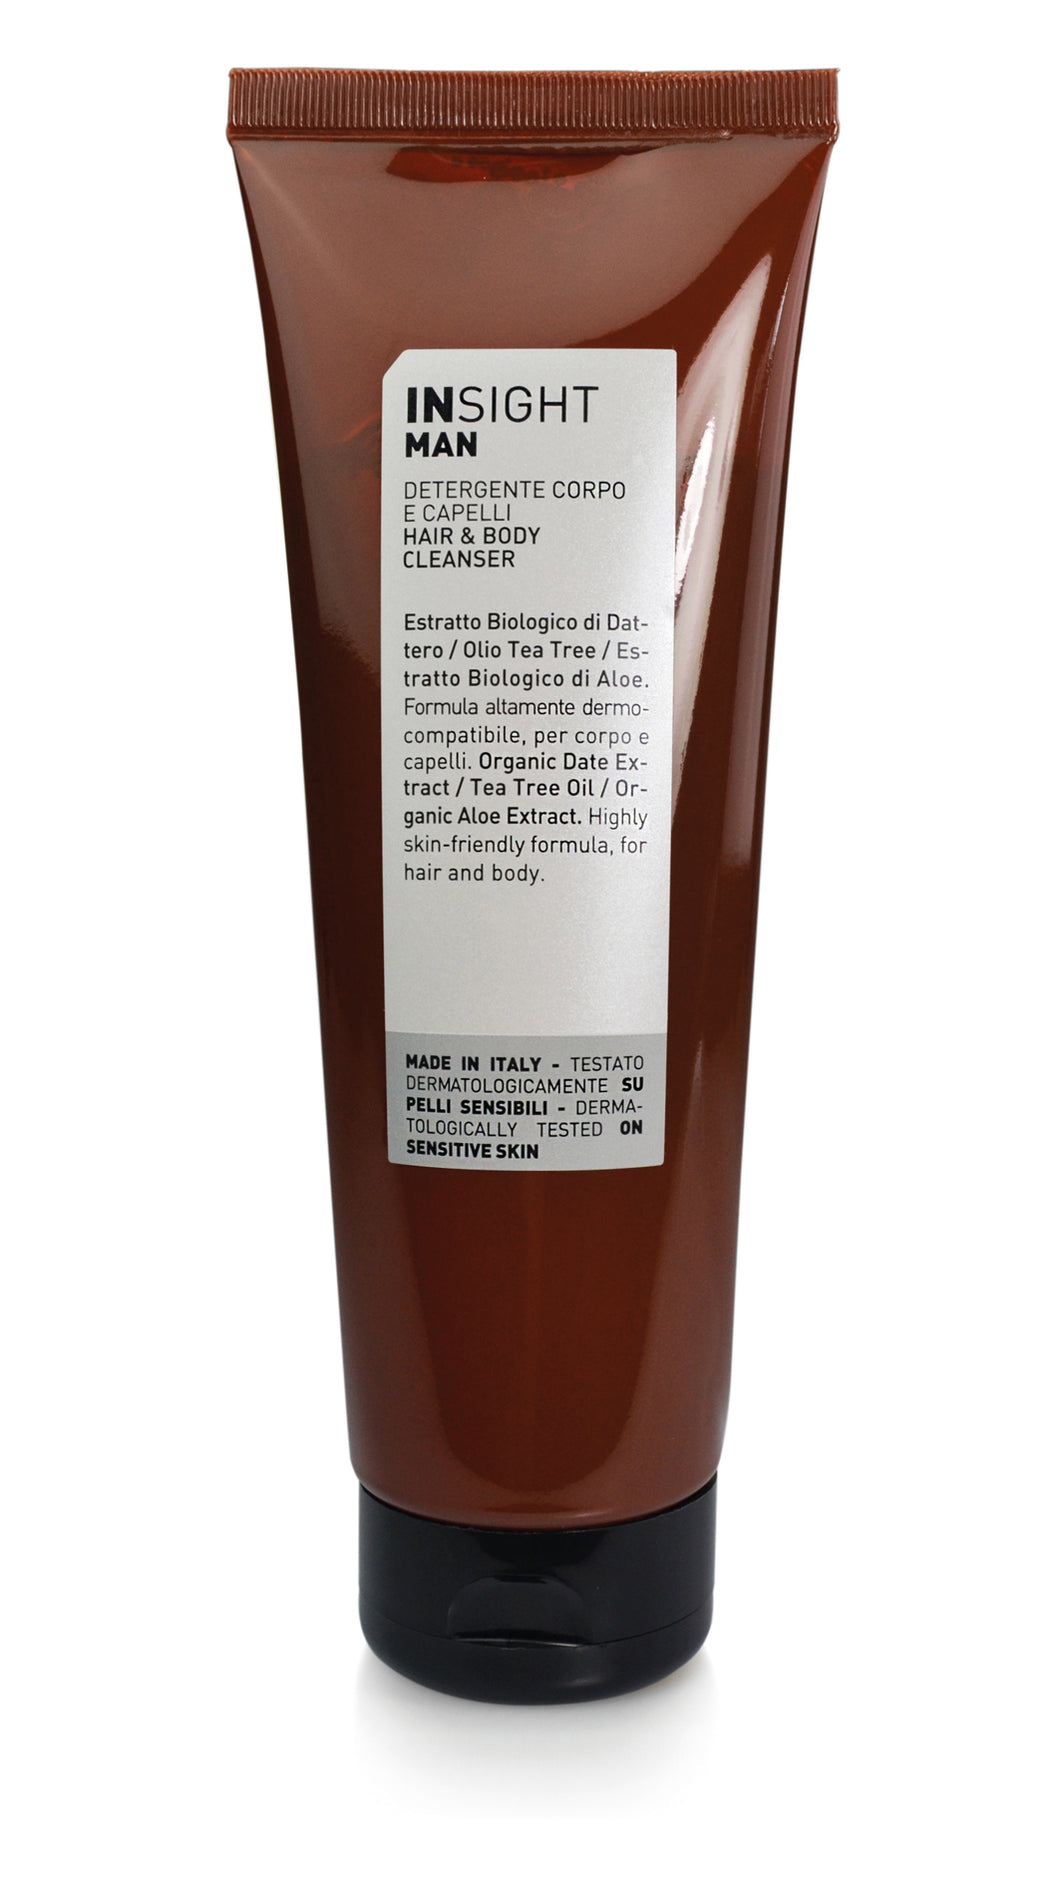 Hair and Body cleanser For Men Insight